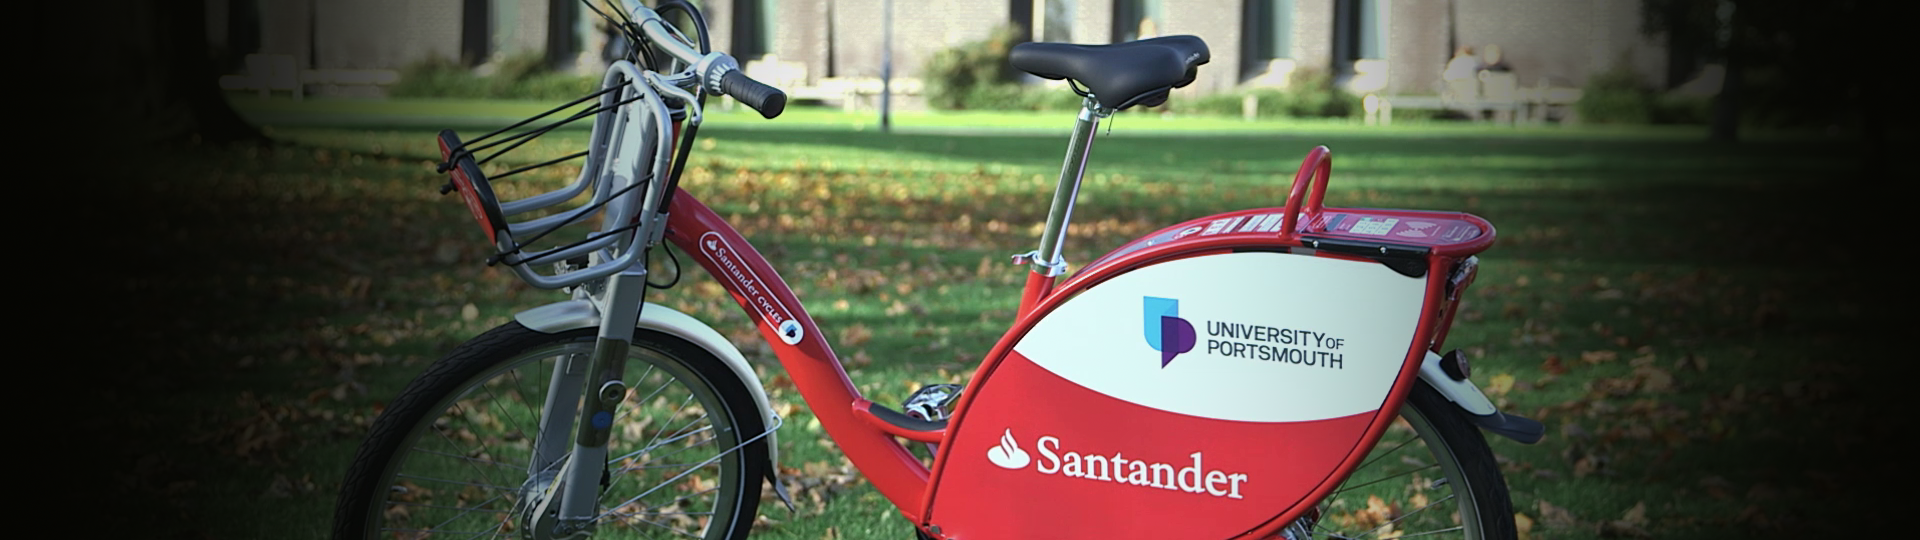 Santander Bike - Pack Shots